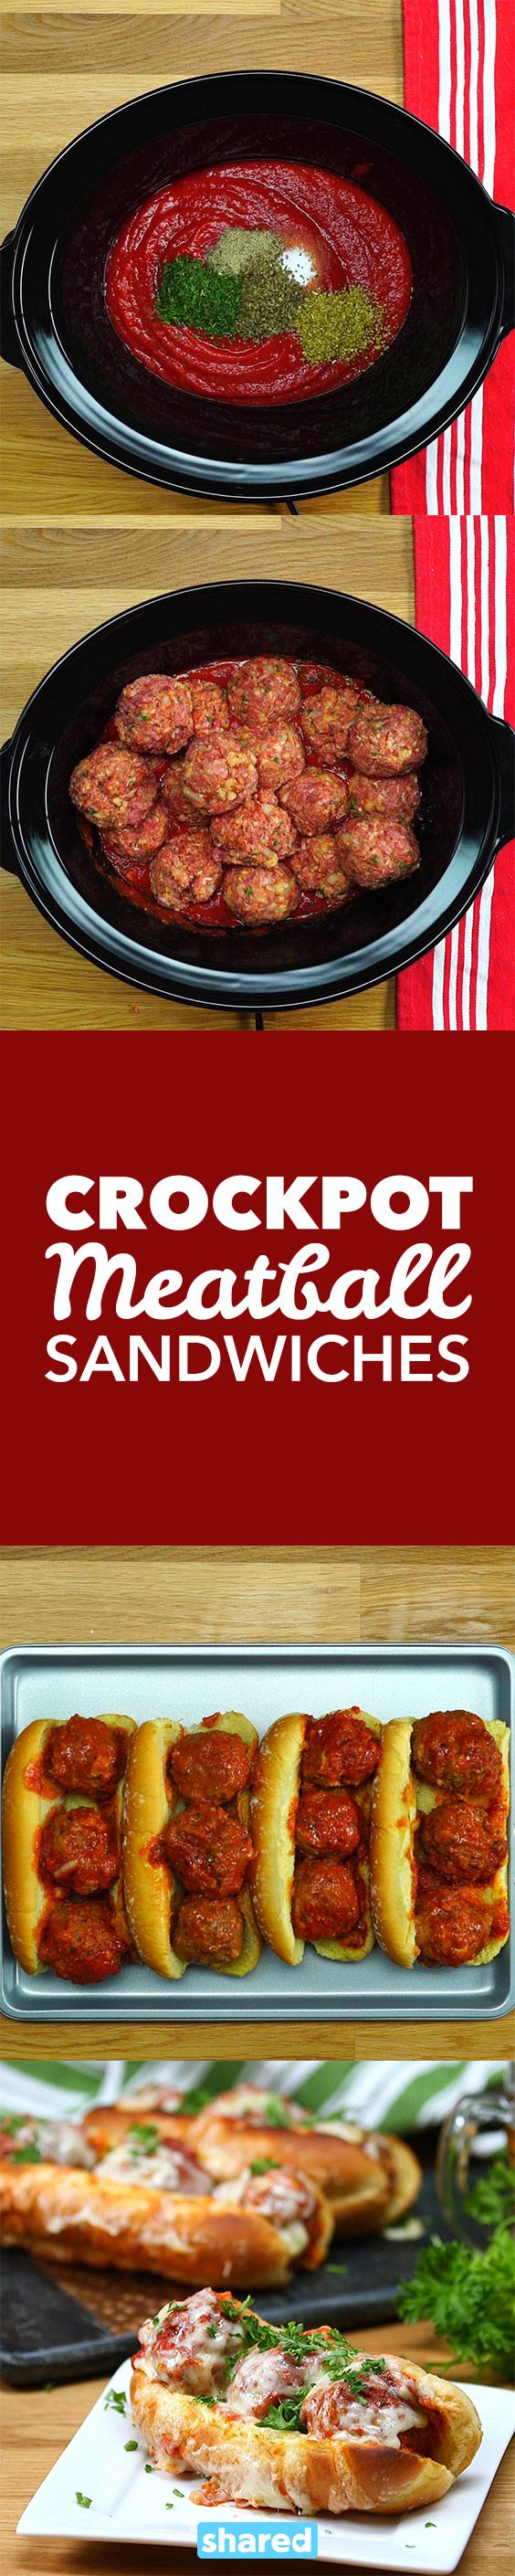 Crockpot Meatball Sandwiches